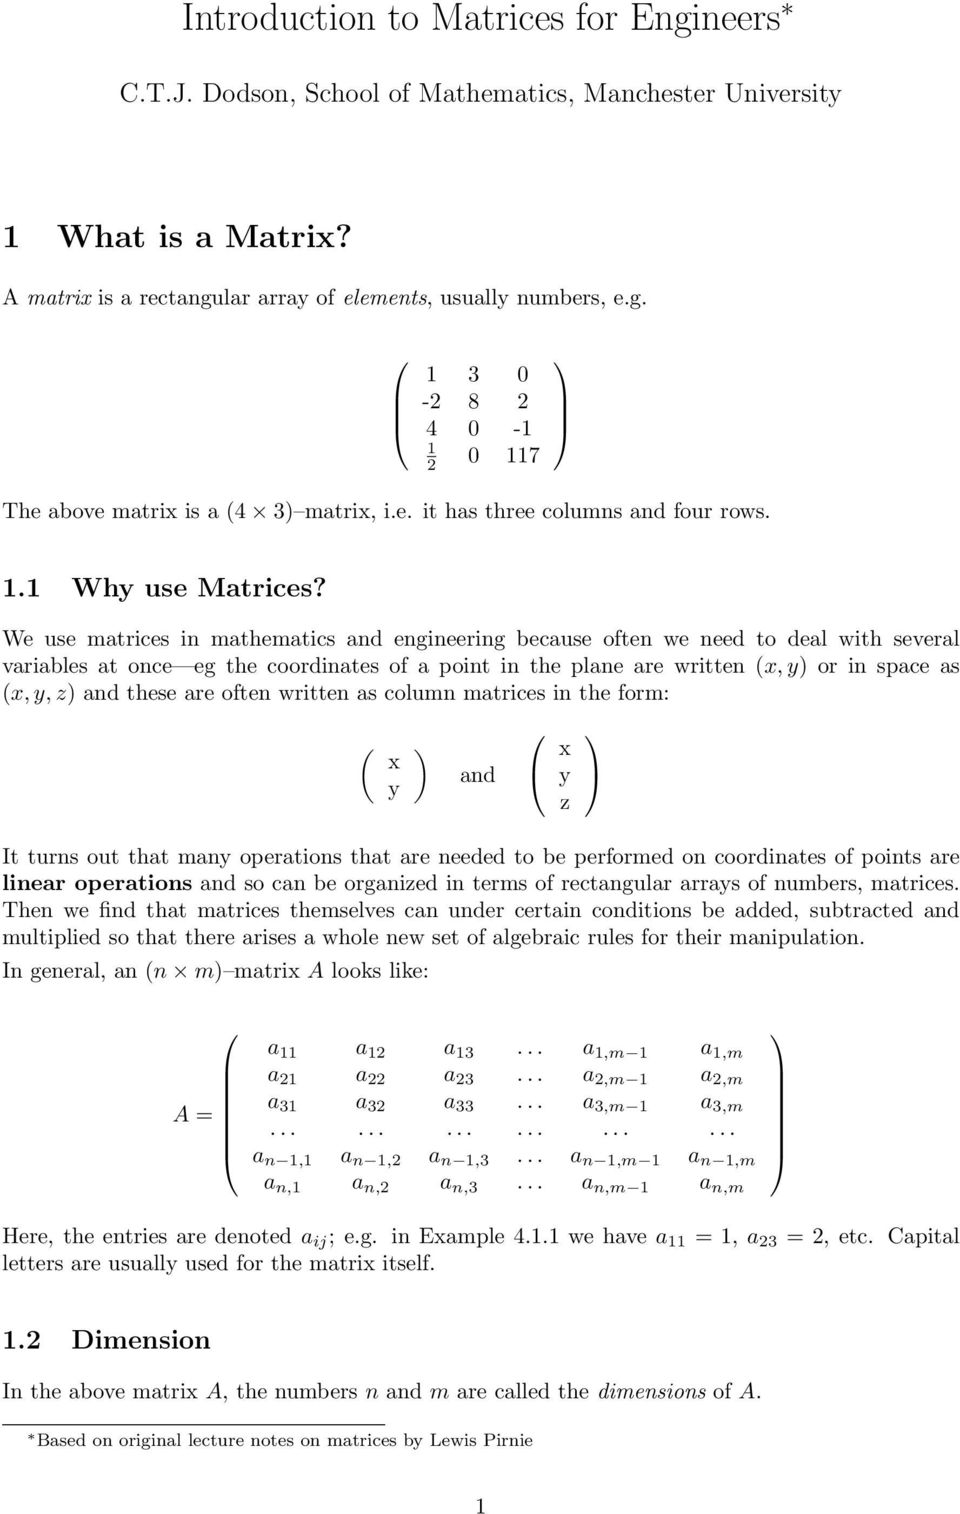 Introduction to Matrices for Engineers - PDF